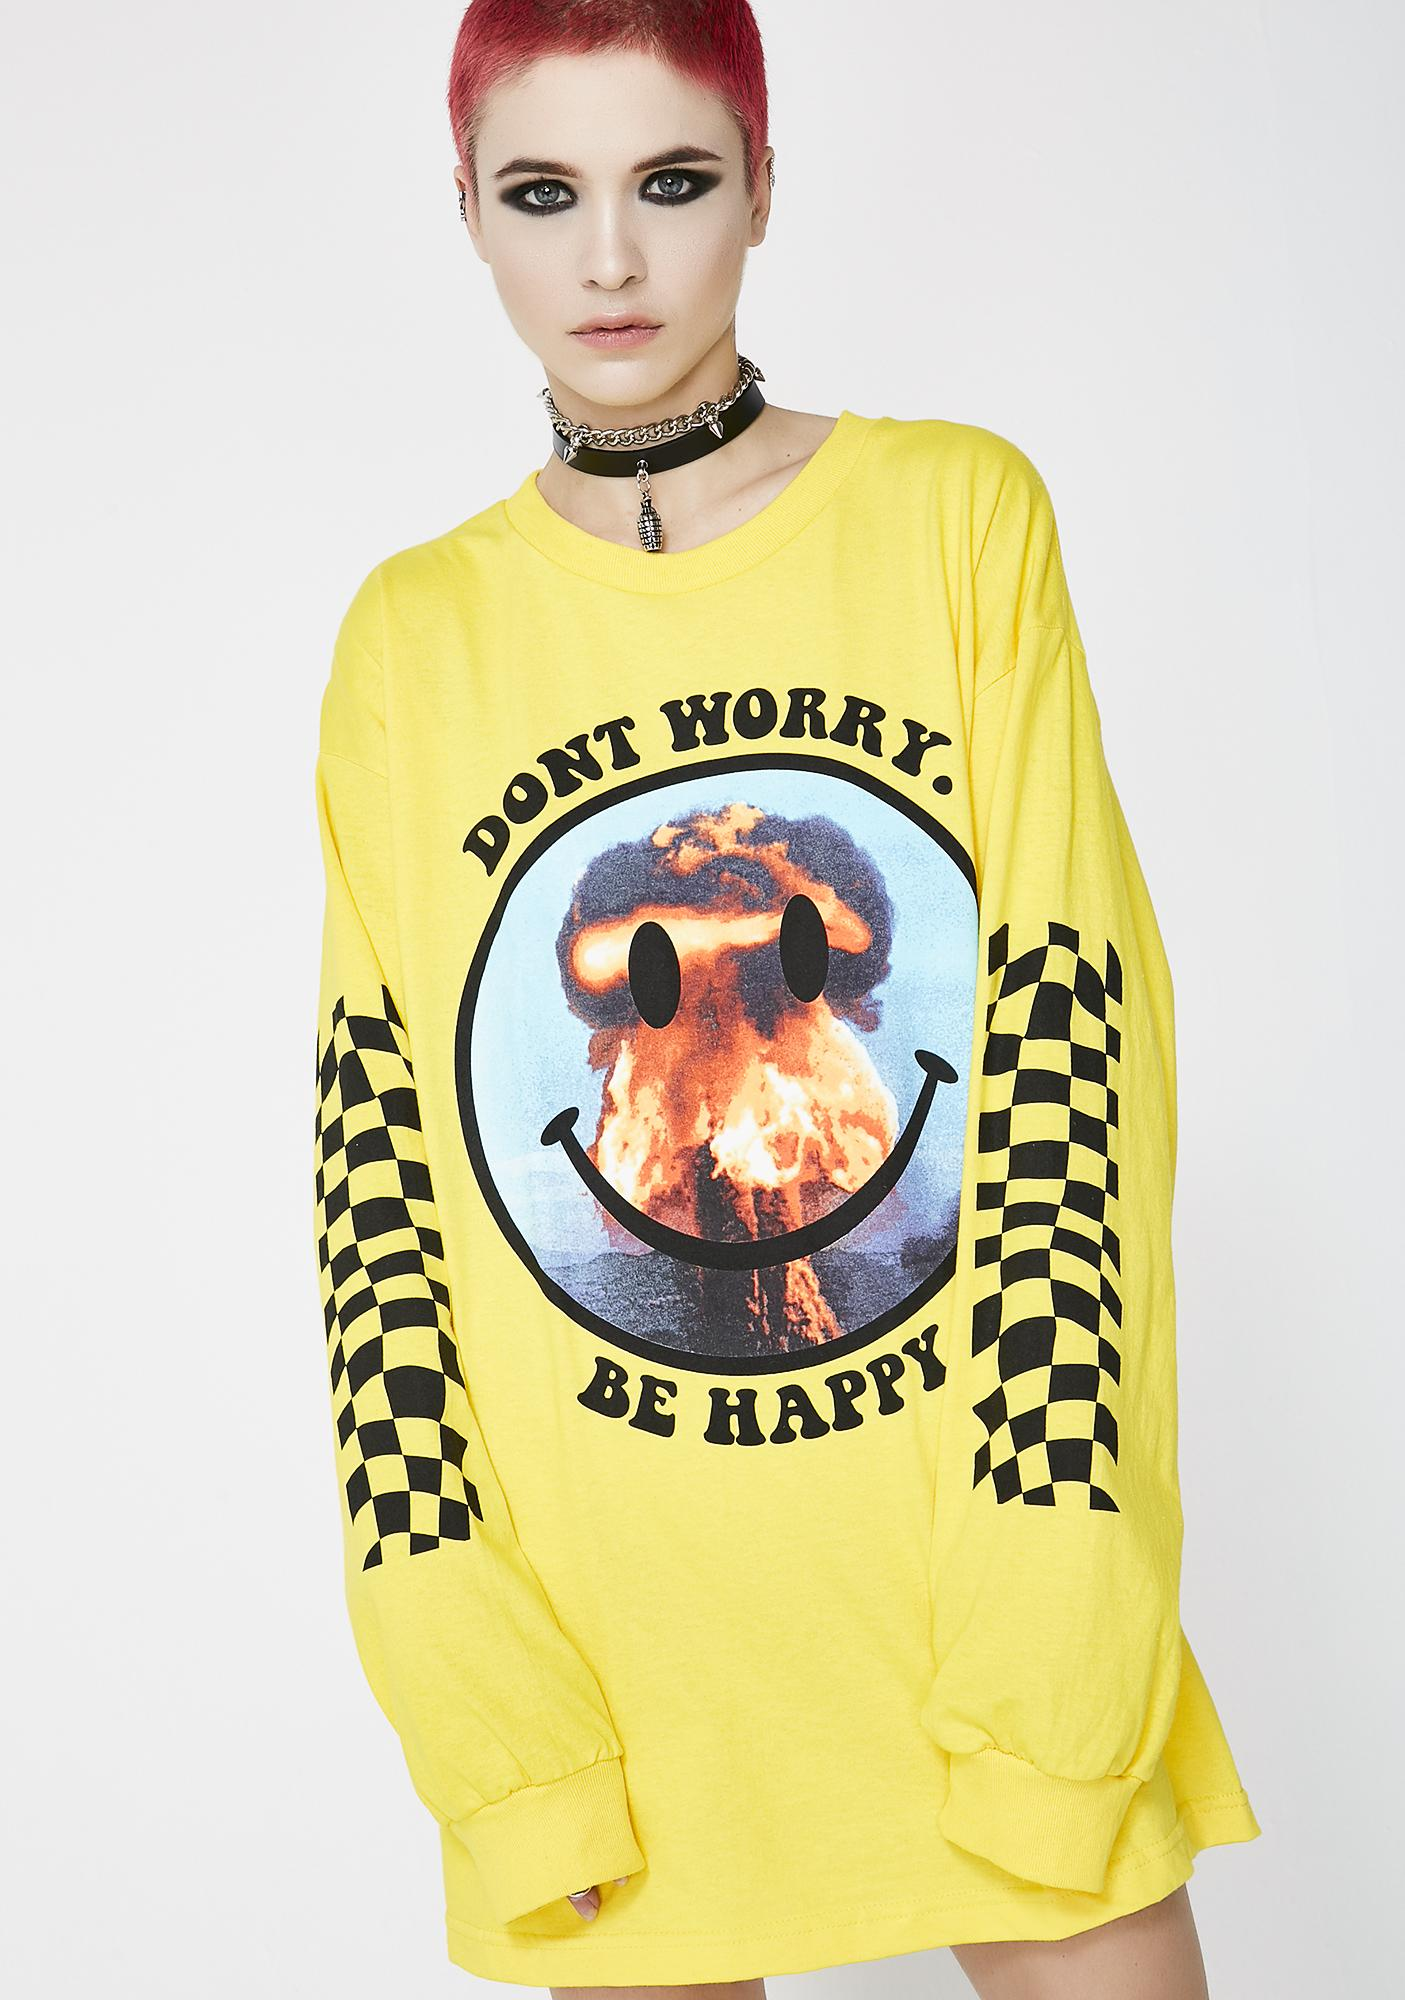 Ain't Nobody Cool Don't Worry Long Sleeve Tee